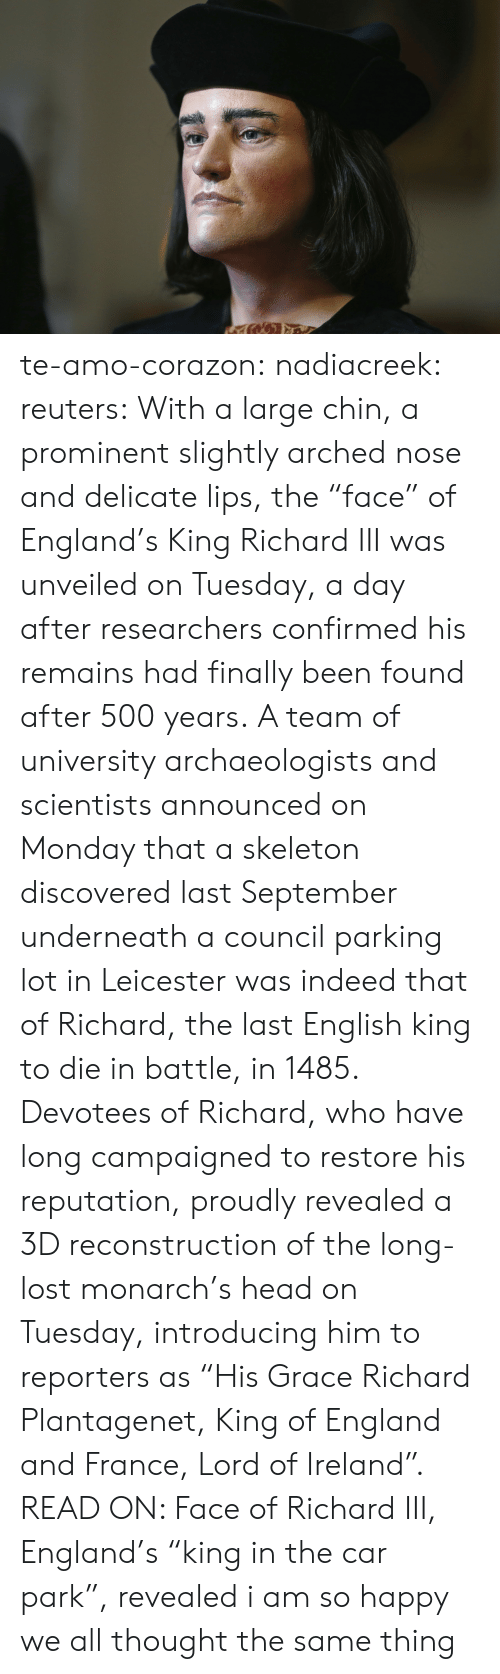 """Remains: te-amo-corazon: nadiacreek:  reuters:  With a large chin, a prominent slightly arched nose and delicate lips, the """"face"""" of England's King Richard III was unveiled on Tuesday, a day after researchers confirmed his remains had finally been found after 500 years. A team of university archaeologists and scientists announced on Monday that a skeleton discovered last September underneath a council parking lot in Leicester was indeed that of Richard, the last English king to die in battle, in 1485. Devotees of Richard, who have long campaigned to restore his reputation, proudly revealed a 3D reconstruction of the long-lost monarch's head on Tuesday, introducing him to reporters as """"His Grace Richard Plantagenet, King of England and France, Lord of Ireland"""". READ ON: Face of Richard III, England's """"king in the car park"""", revealed     i am so happy we all thought the same thing"""